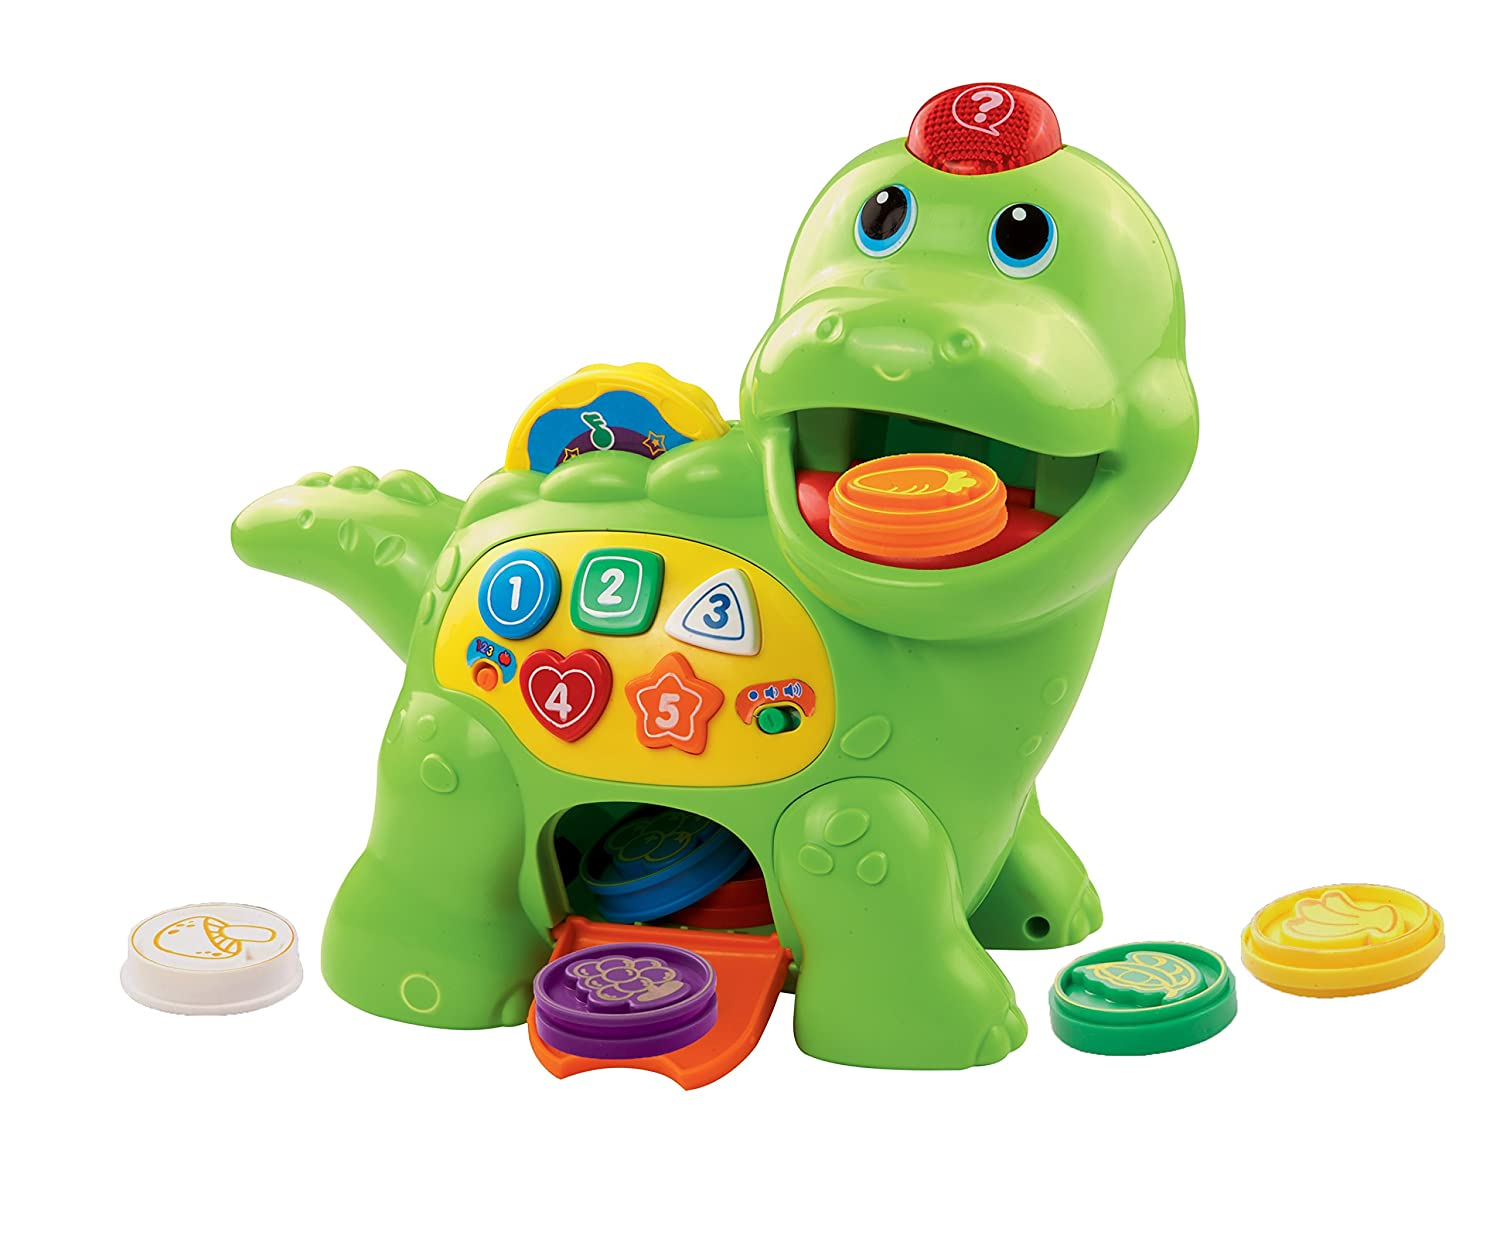 VTech Chomp and Count Dino Toy